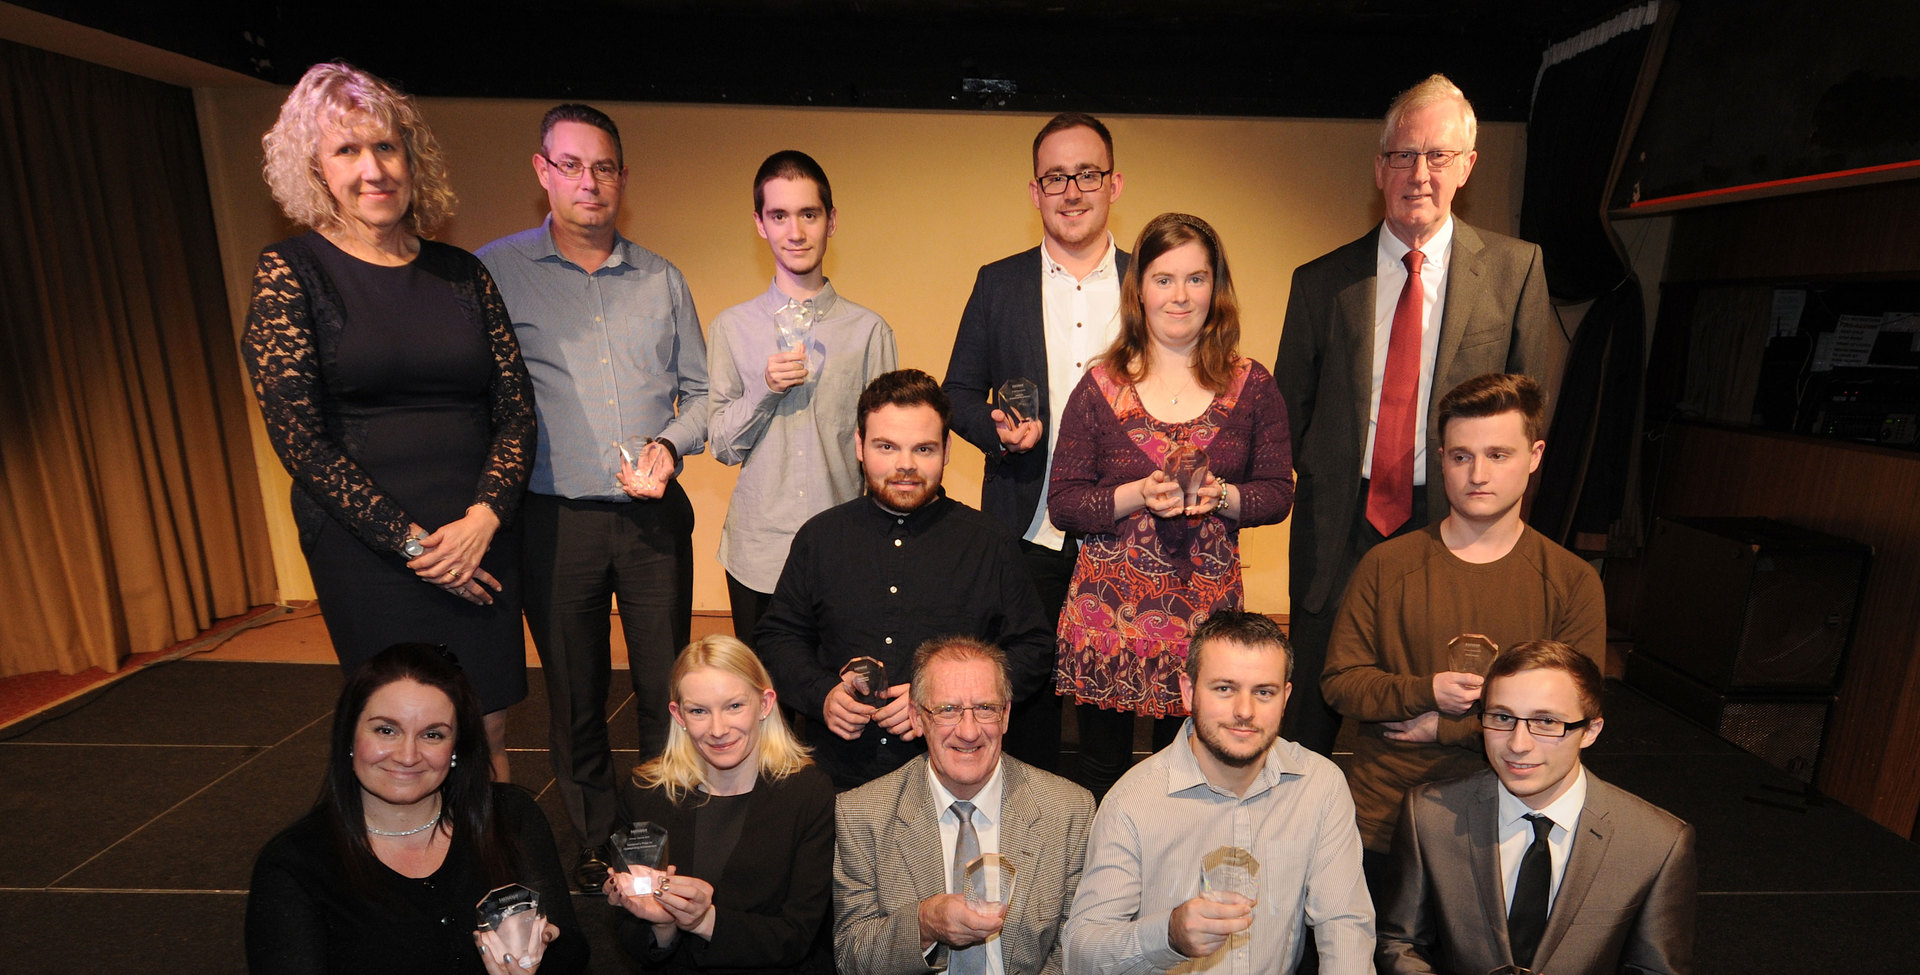 Students and staff celebrate at Annual Awards evening